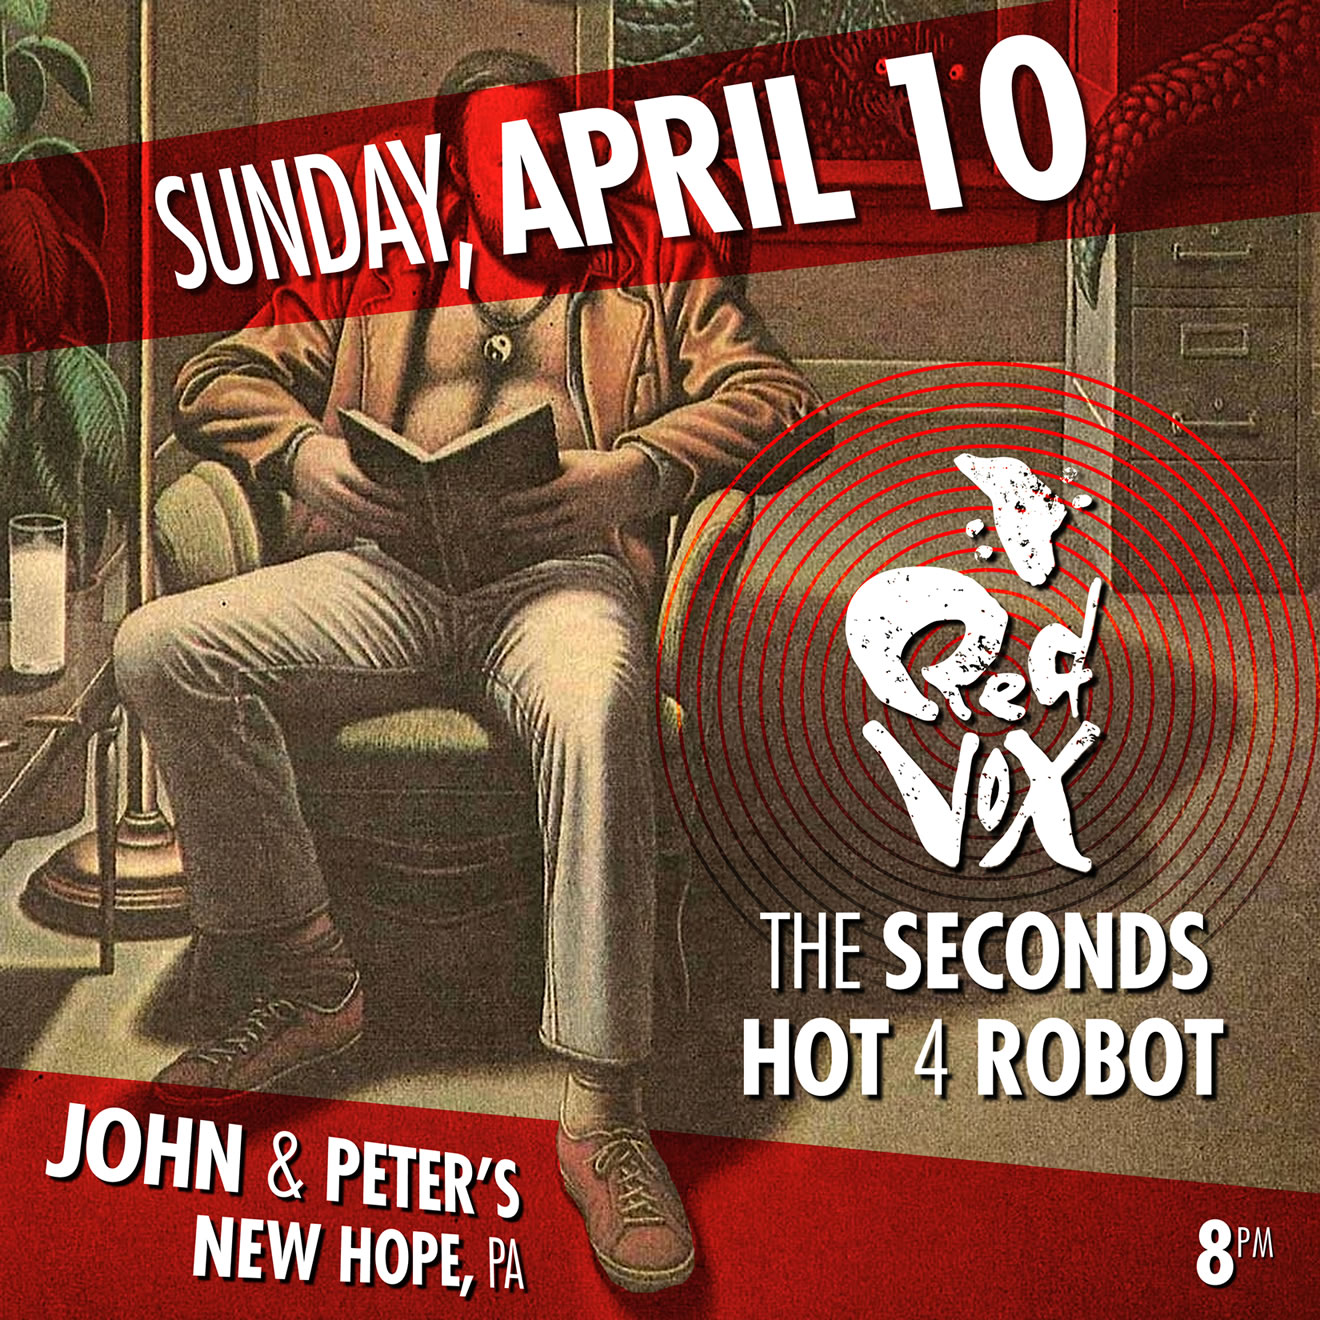 Red Vox, The Seconds & Hot 4 Robot live at John & Peter's